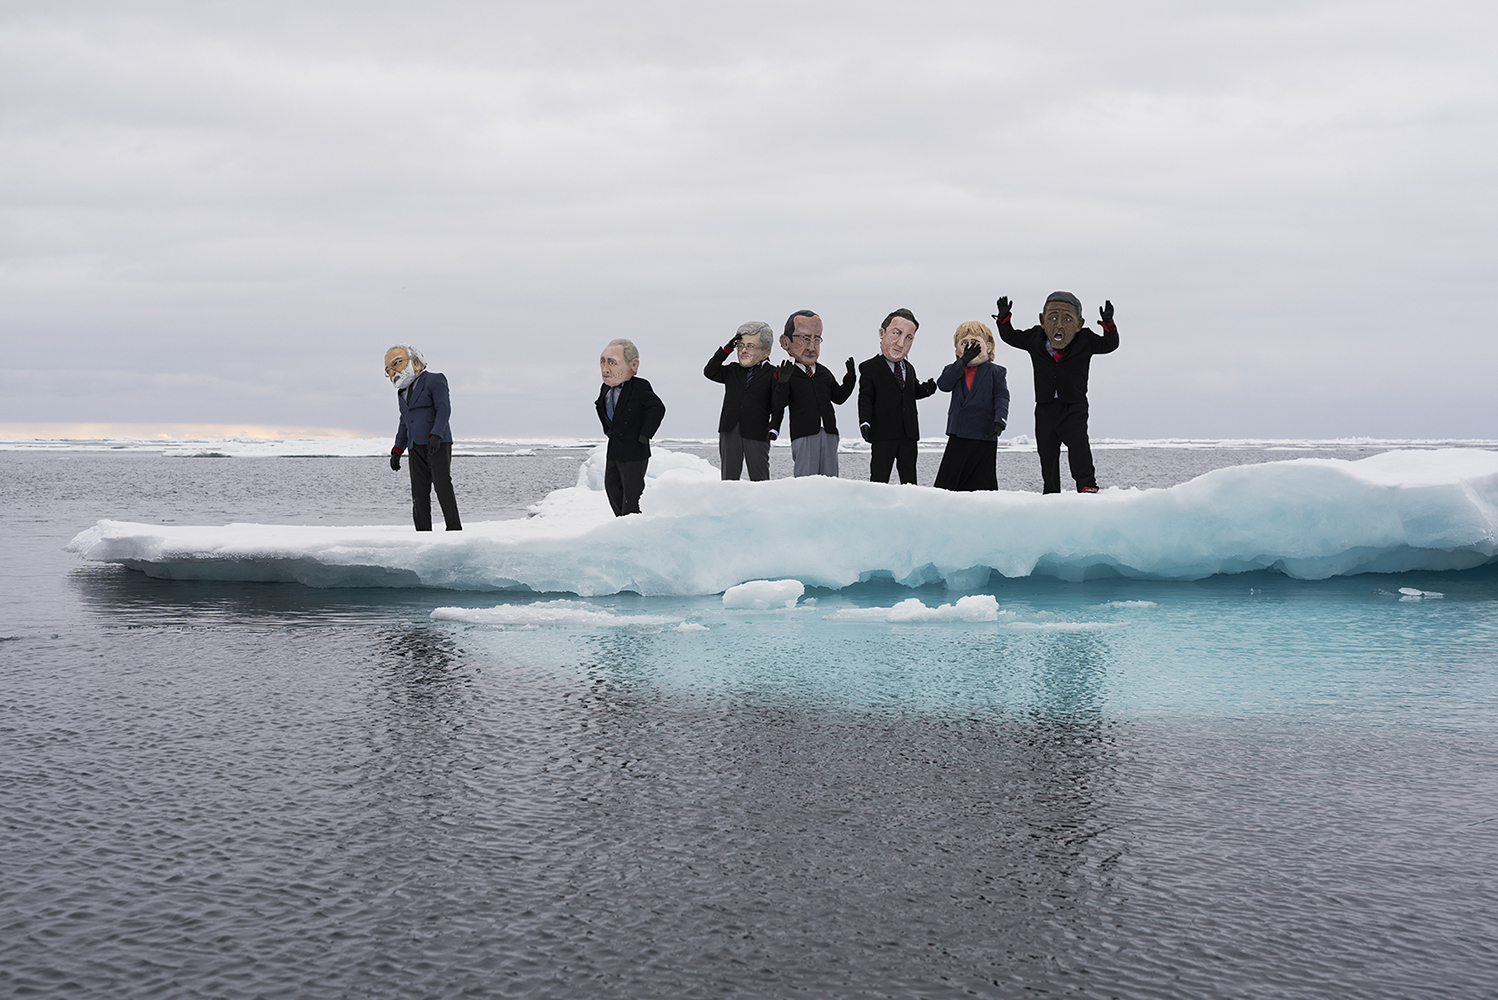 8/9 2014, Svalbard, Norway. Greenpeace activists representing heads of state, wearing suits and papier-mâché heads over drysuits, on an ice floe in the Arctic Ocean northwest of Svalbard. The image is taken during a Greenpeace ship tour, as part of the Save the Arctic campaign, to underline the urgency of climate change most acutely felt in the Arctic, where ice cover is disappearing rapidly, and to urge the global leaders to take urgent action at the climate summit in New York September 23rd for a transition to 100% renewable energy system by mid-century while phasing out fossil fuels. Props made by 